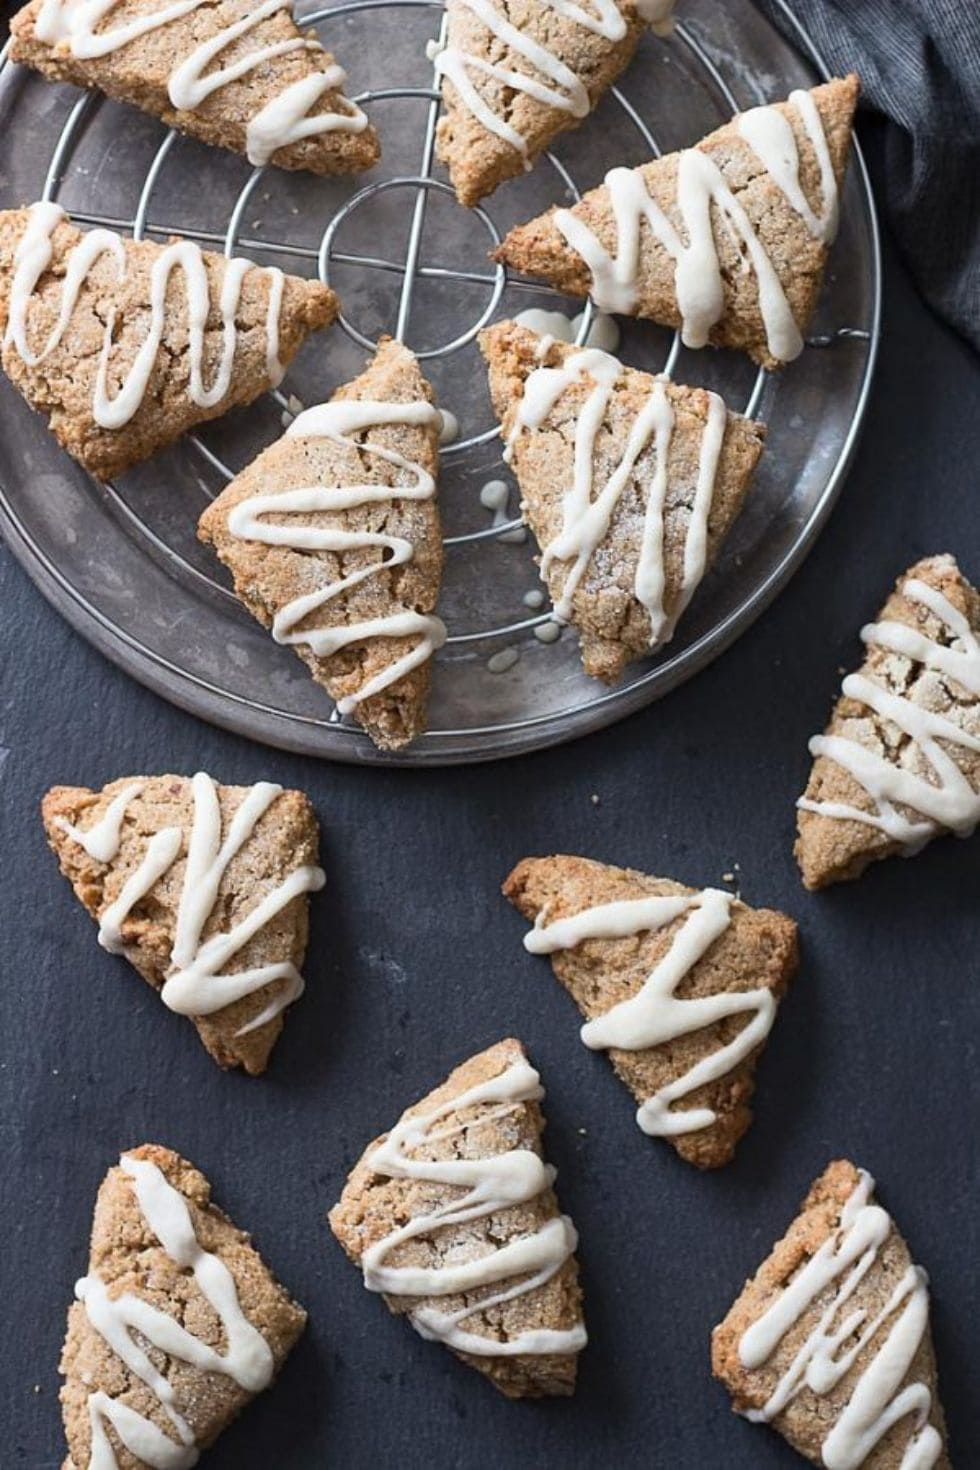 keto starbucks copycat maple scones on a black table